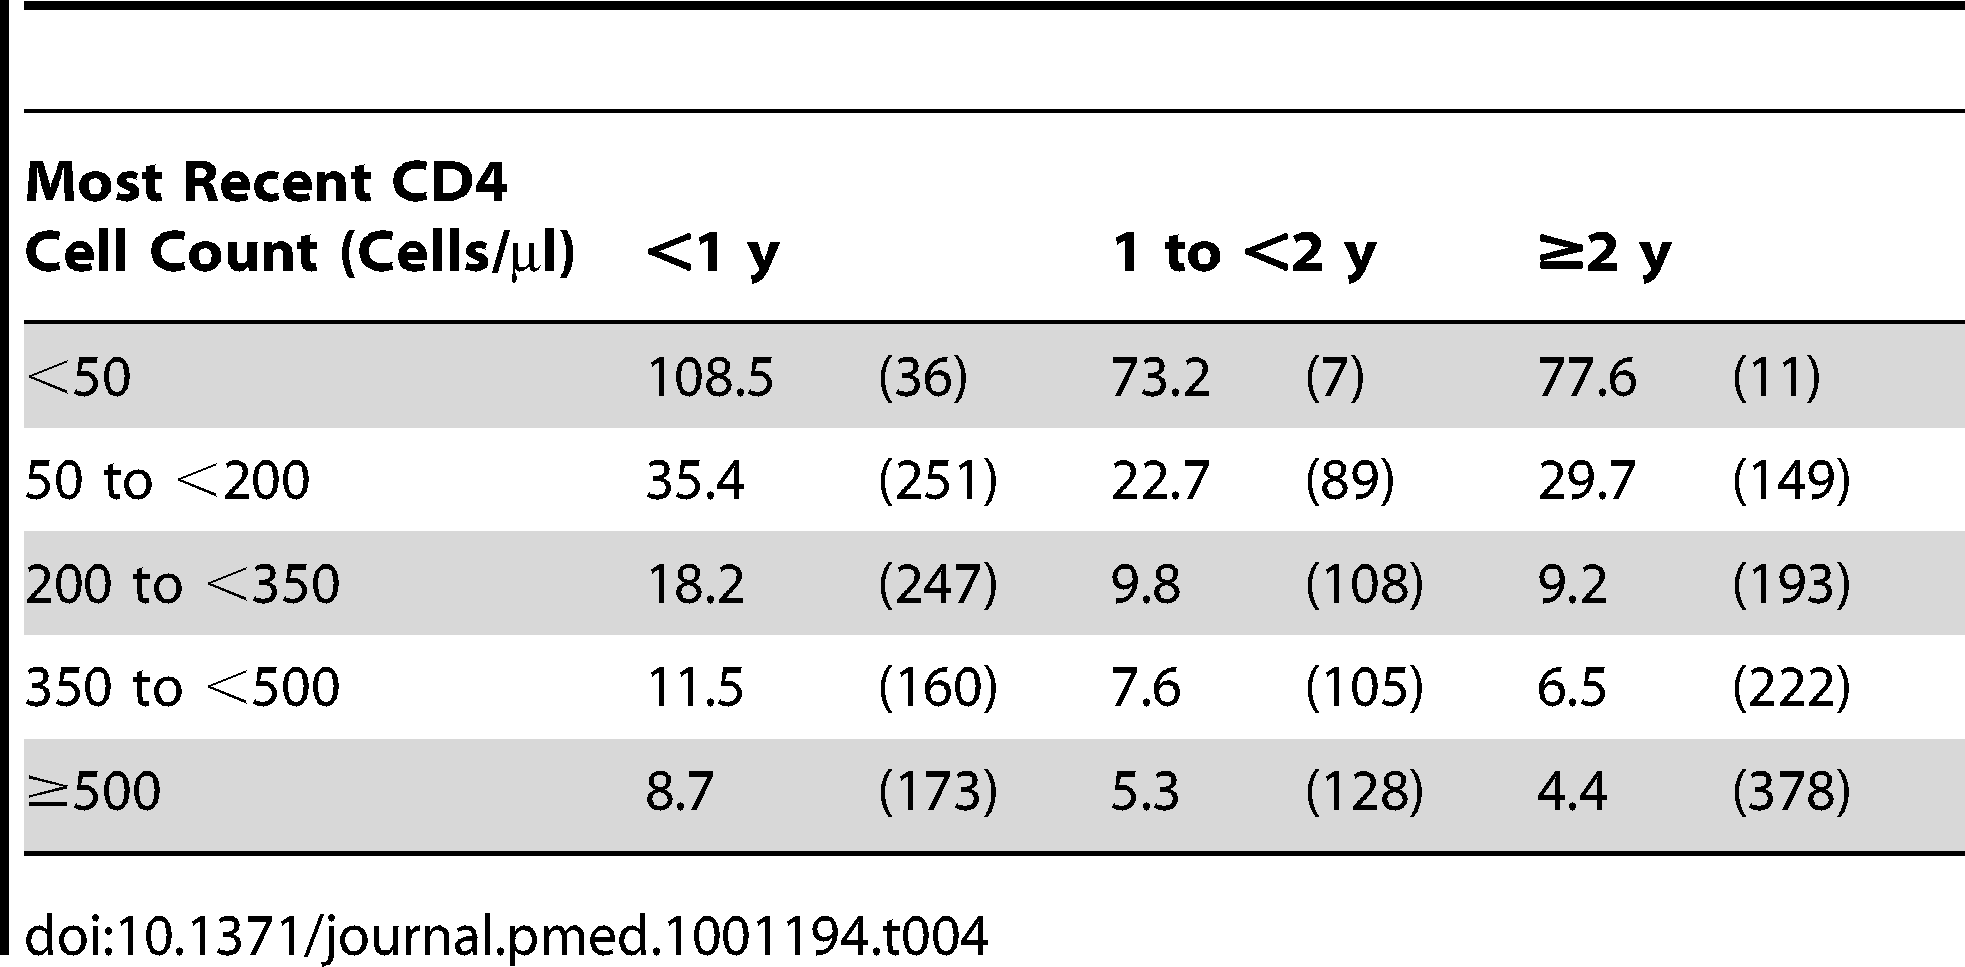 Event rates in CD4 strata among the 75,336 patients with at least one suppression episode while on cART: event rates per 1,000 y of suppressed viral load (number of events) over time for the primary outcome (a first new AIDS event or death).